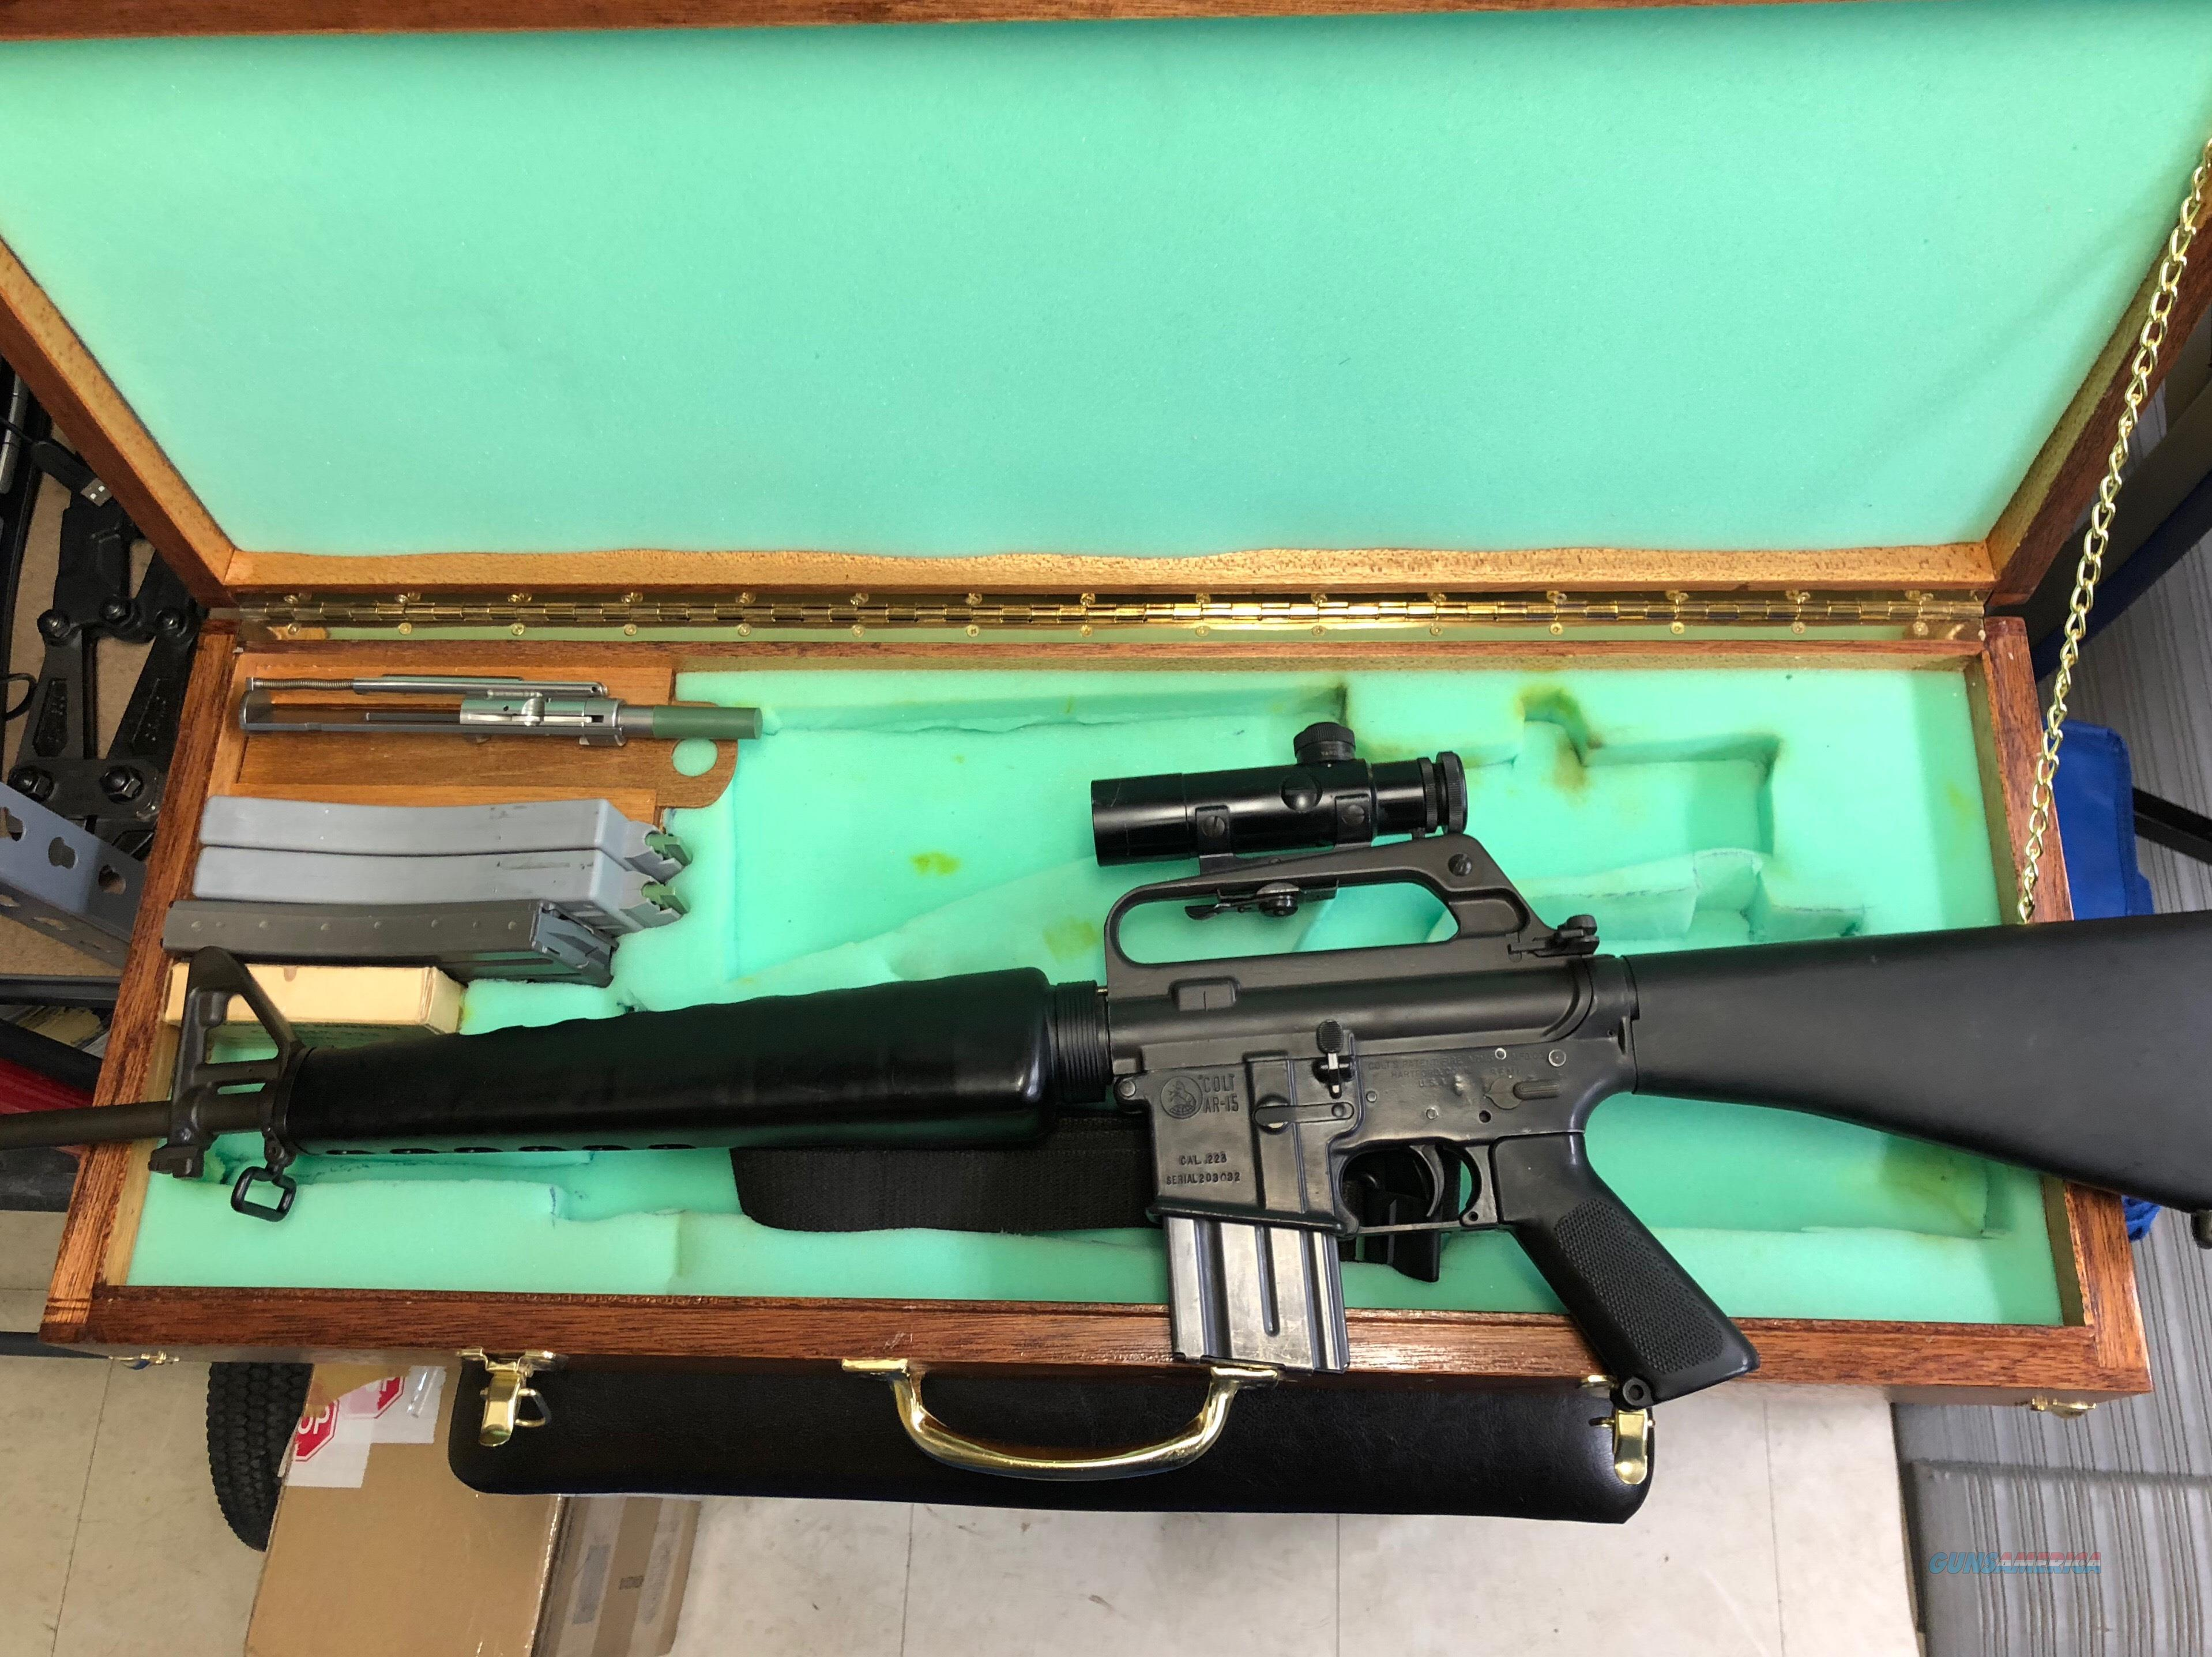 RARE COLT AR-15 PRE BAN WITH ORIGINAL .22LR CONVERSION KIT  Guns > Rifles > Colt Military/Tactical Rifles